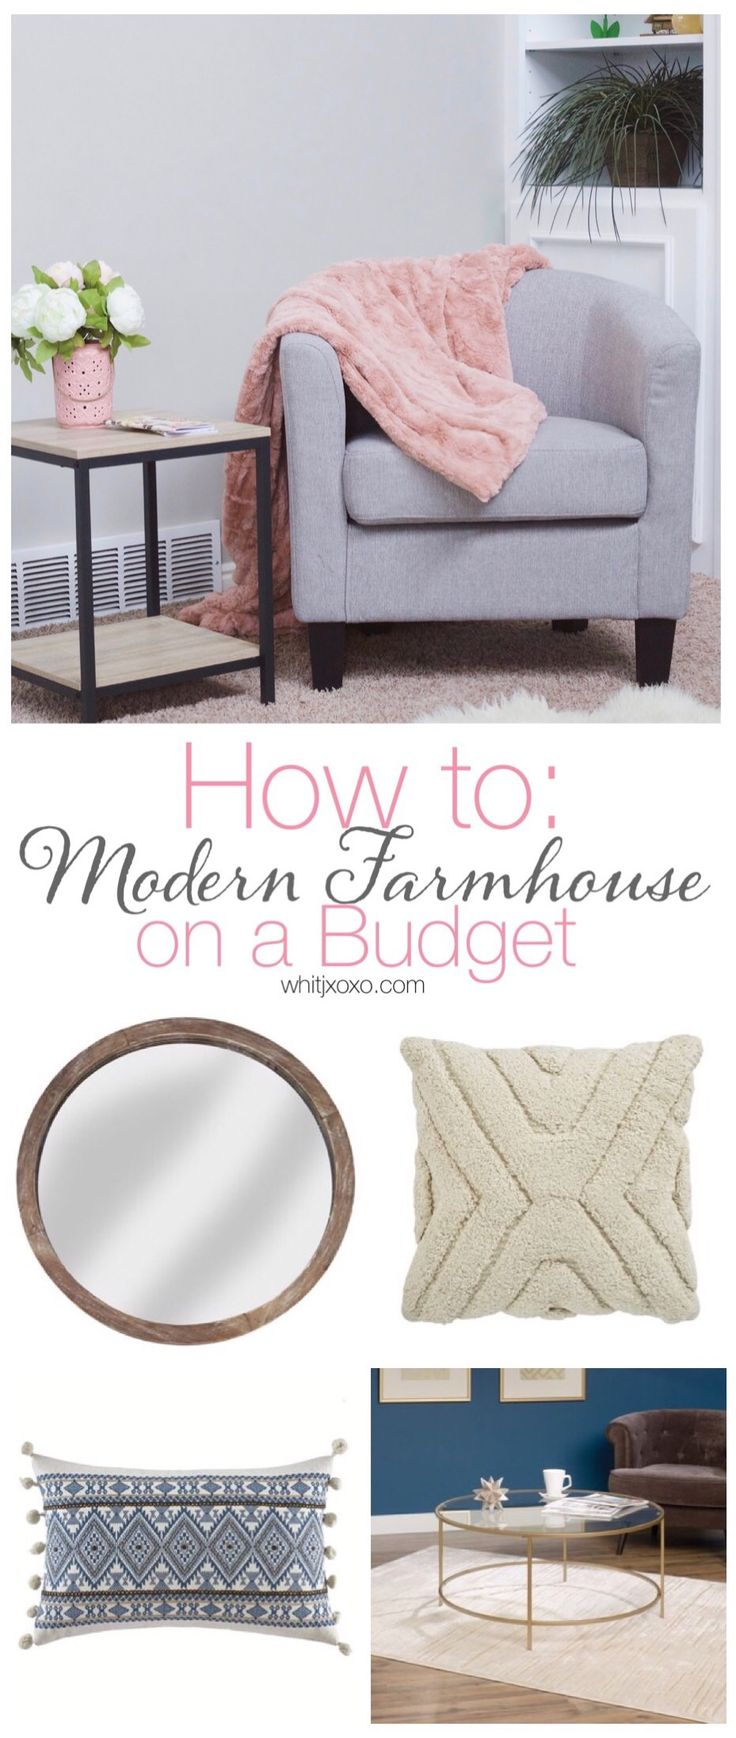 Do you want to do modern farmhouse design in your home but think it's impossible to stick to a budget? Well, it's not and this post will show you how!   whitjxoxo.com